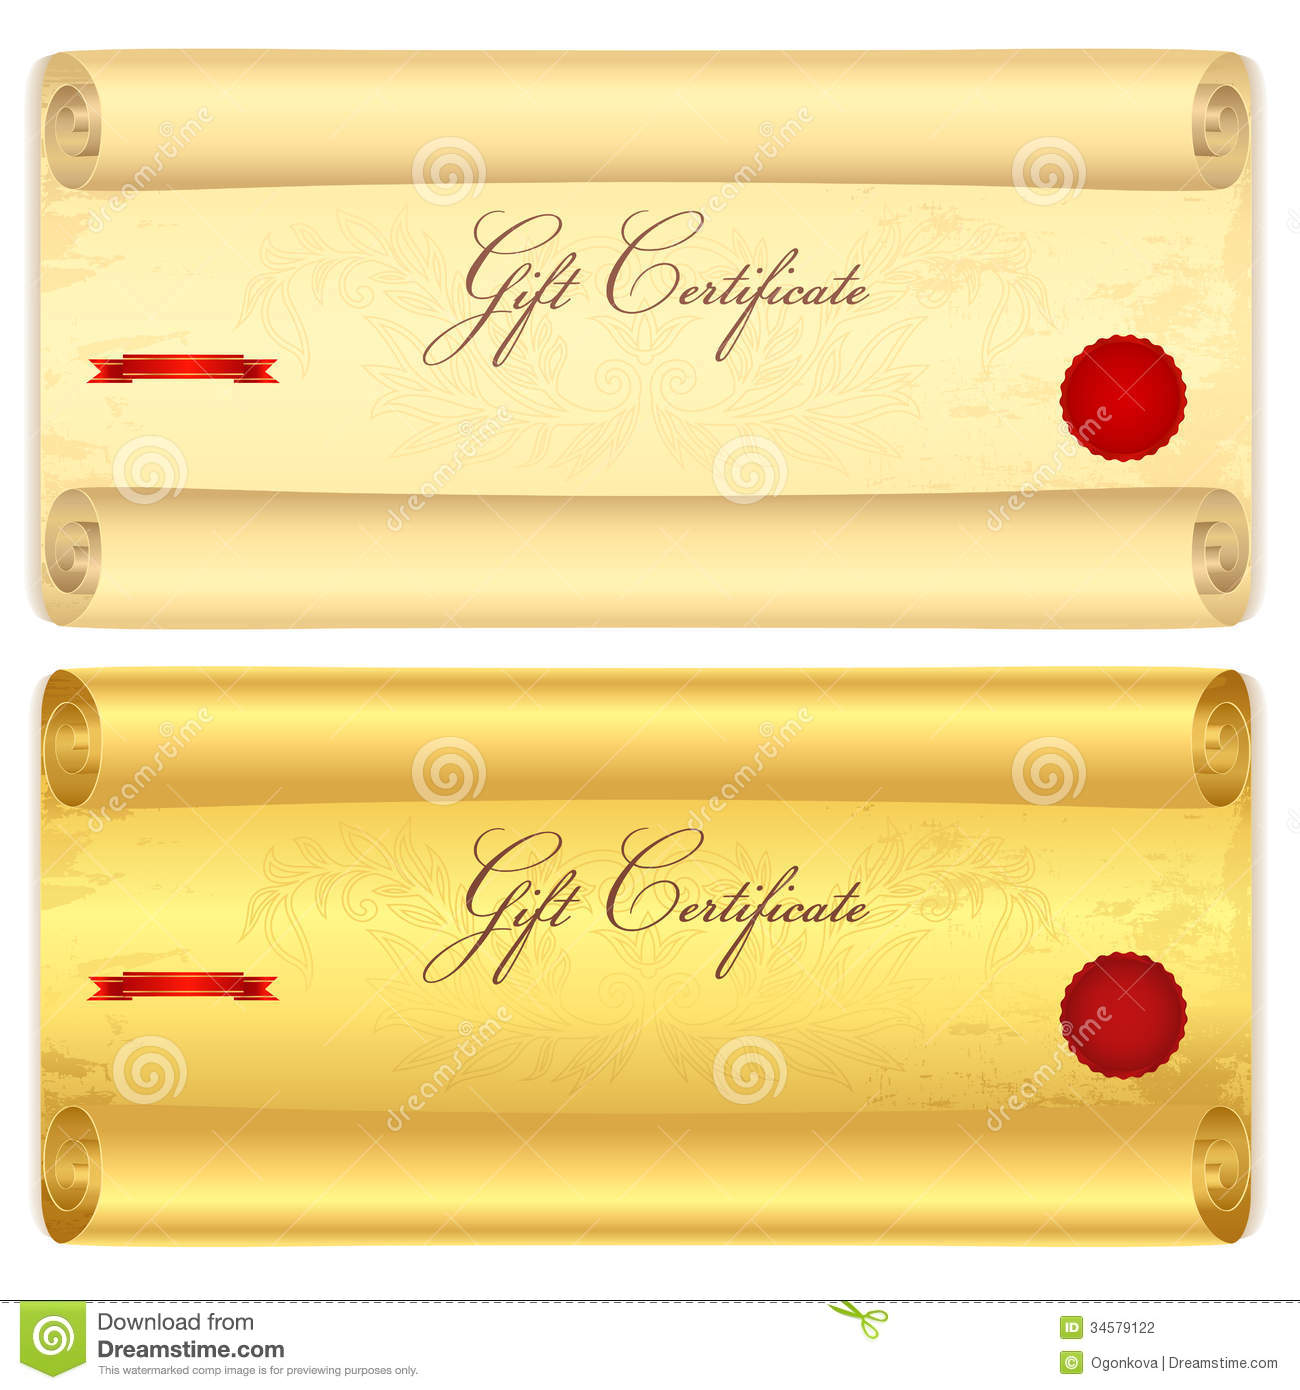 doc 799352 gift certificate voucher template template for gift gift certificate voucher template wax seal royalty gift certificate voucher template